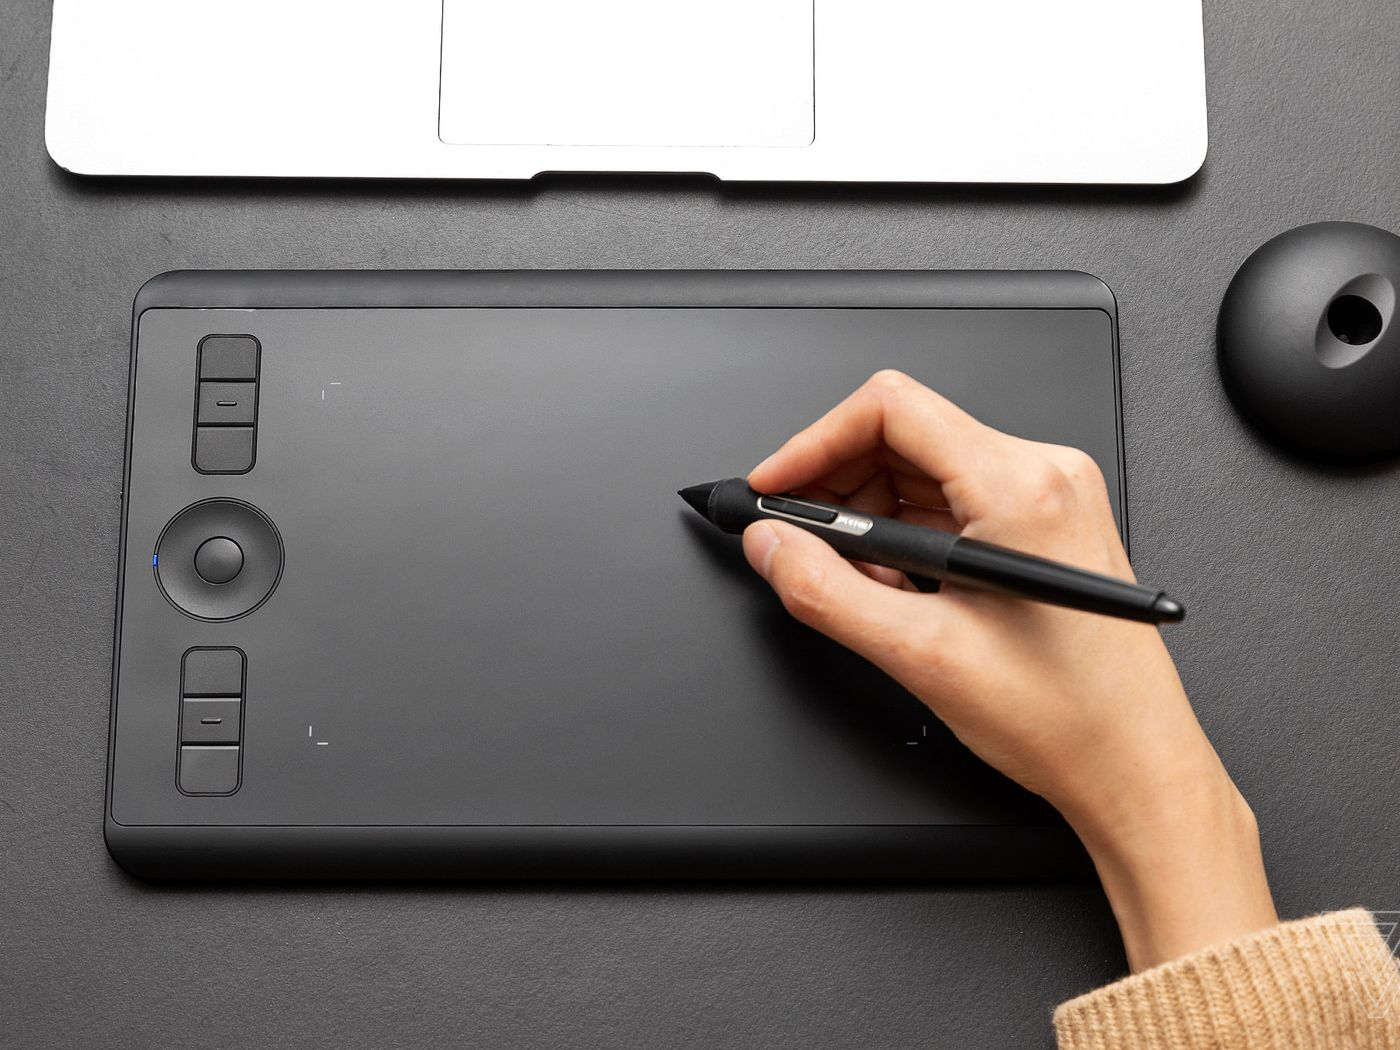 Wacom Says It S Not Spying On Its Customers And Users Can Opt Out Of Data Collection The Verge